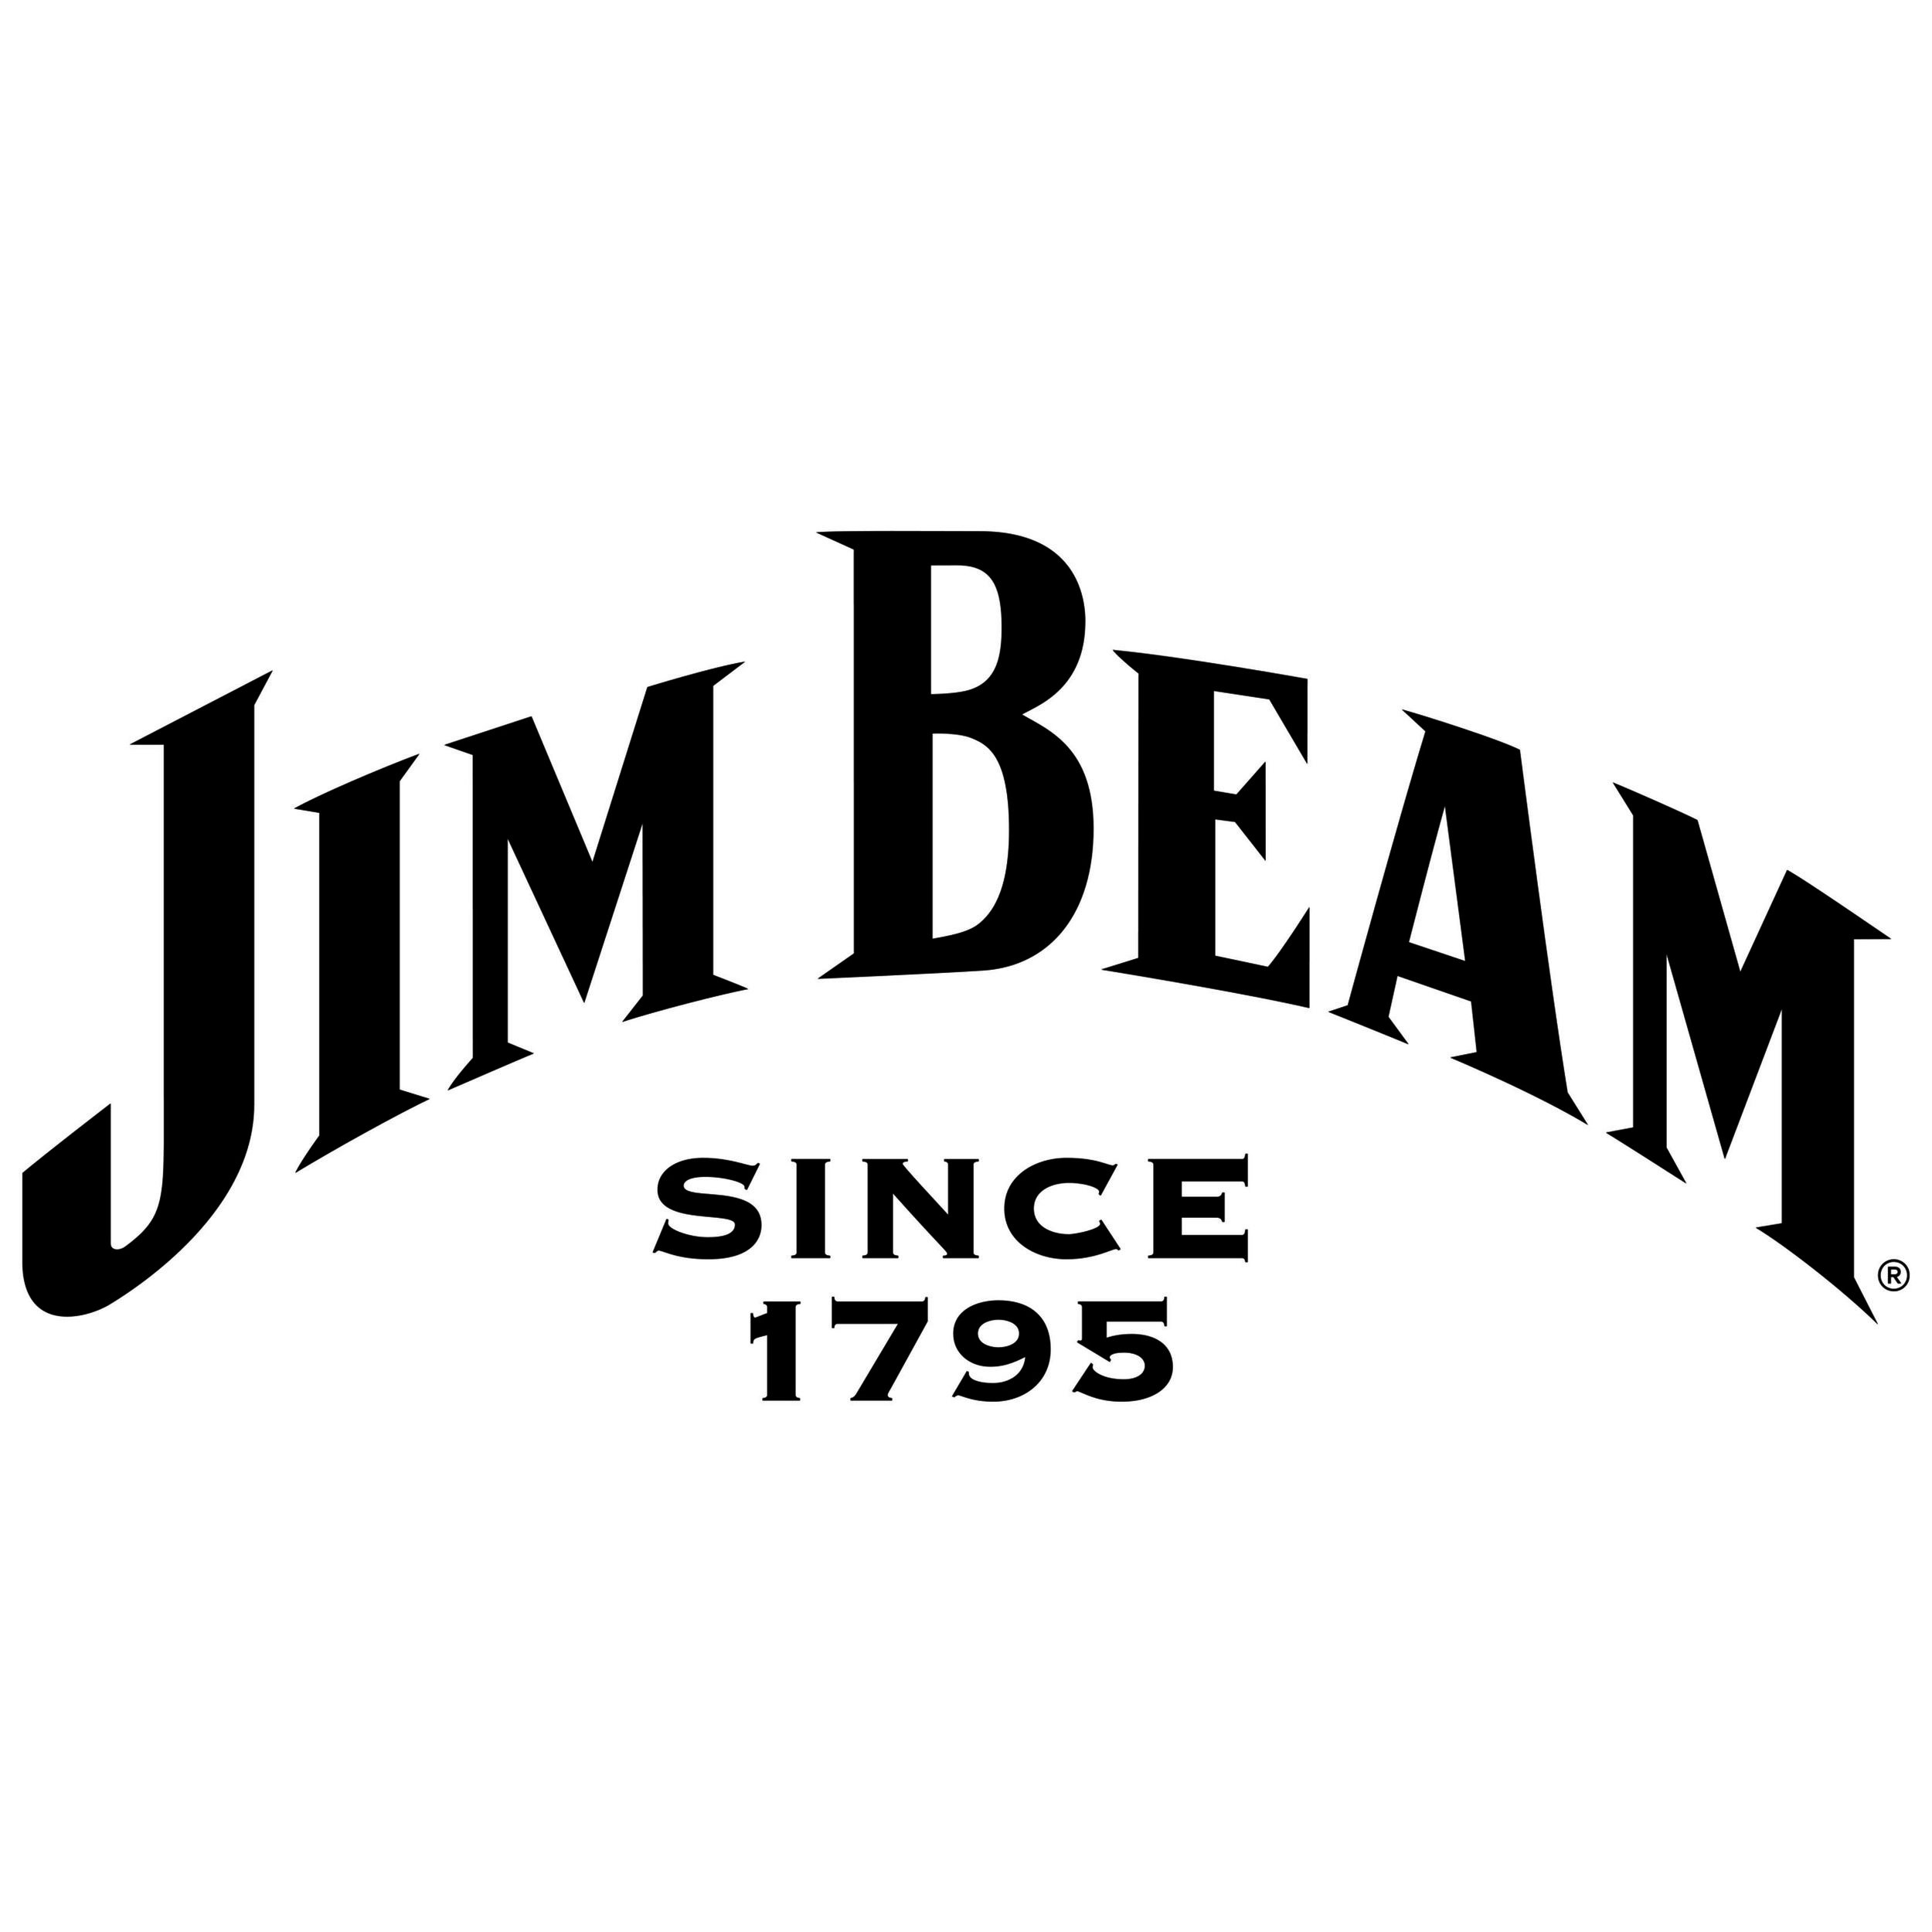 Jim Beam MC b&w.jpg